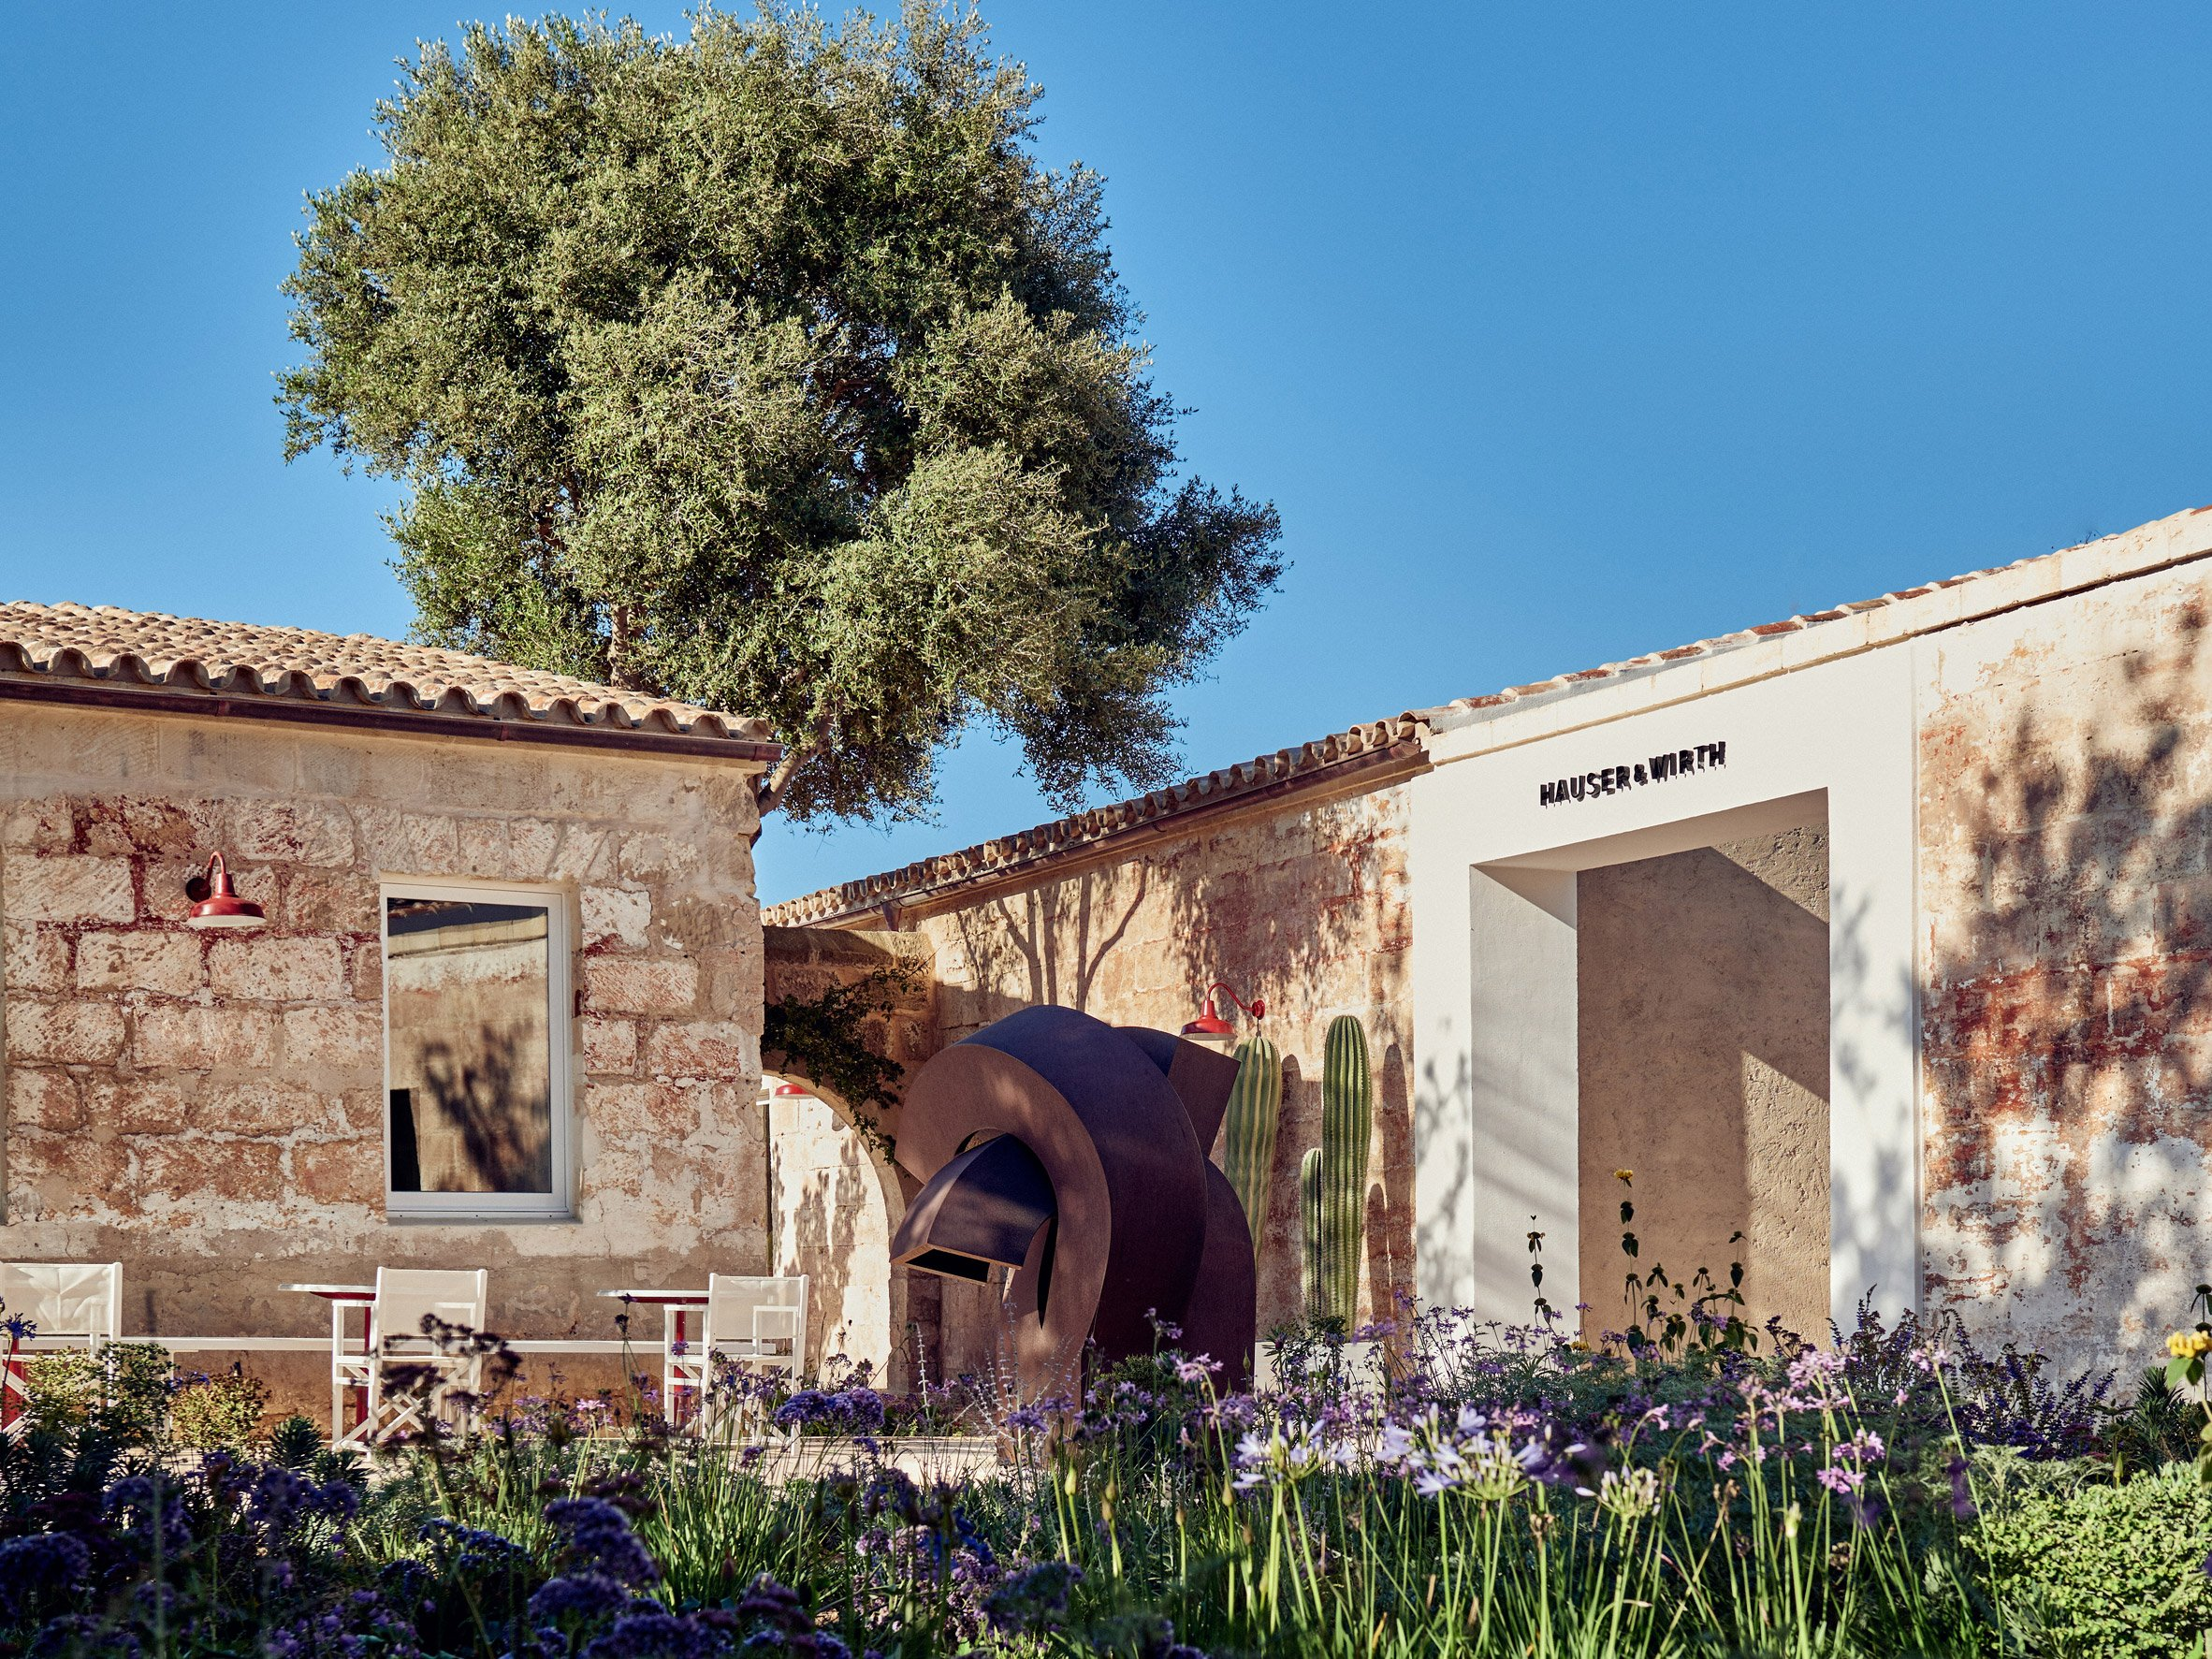 Hauser & Wirth Menorca was built on a small island